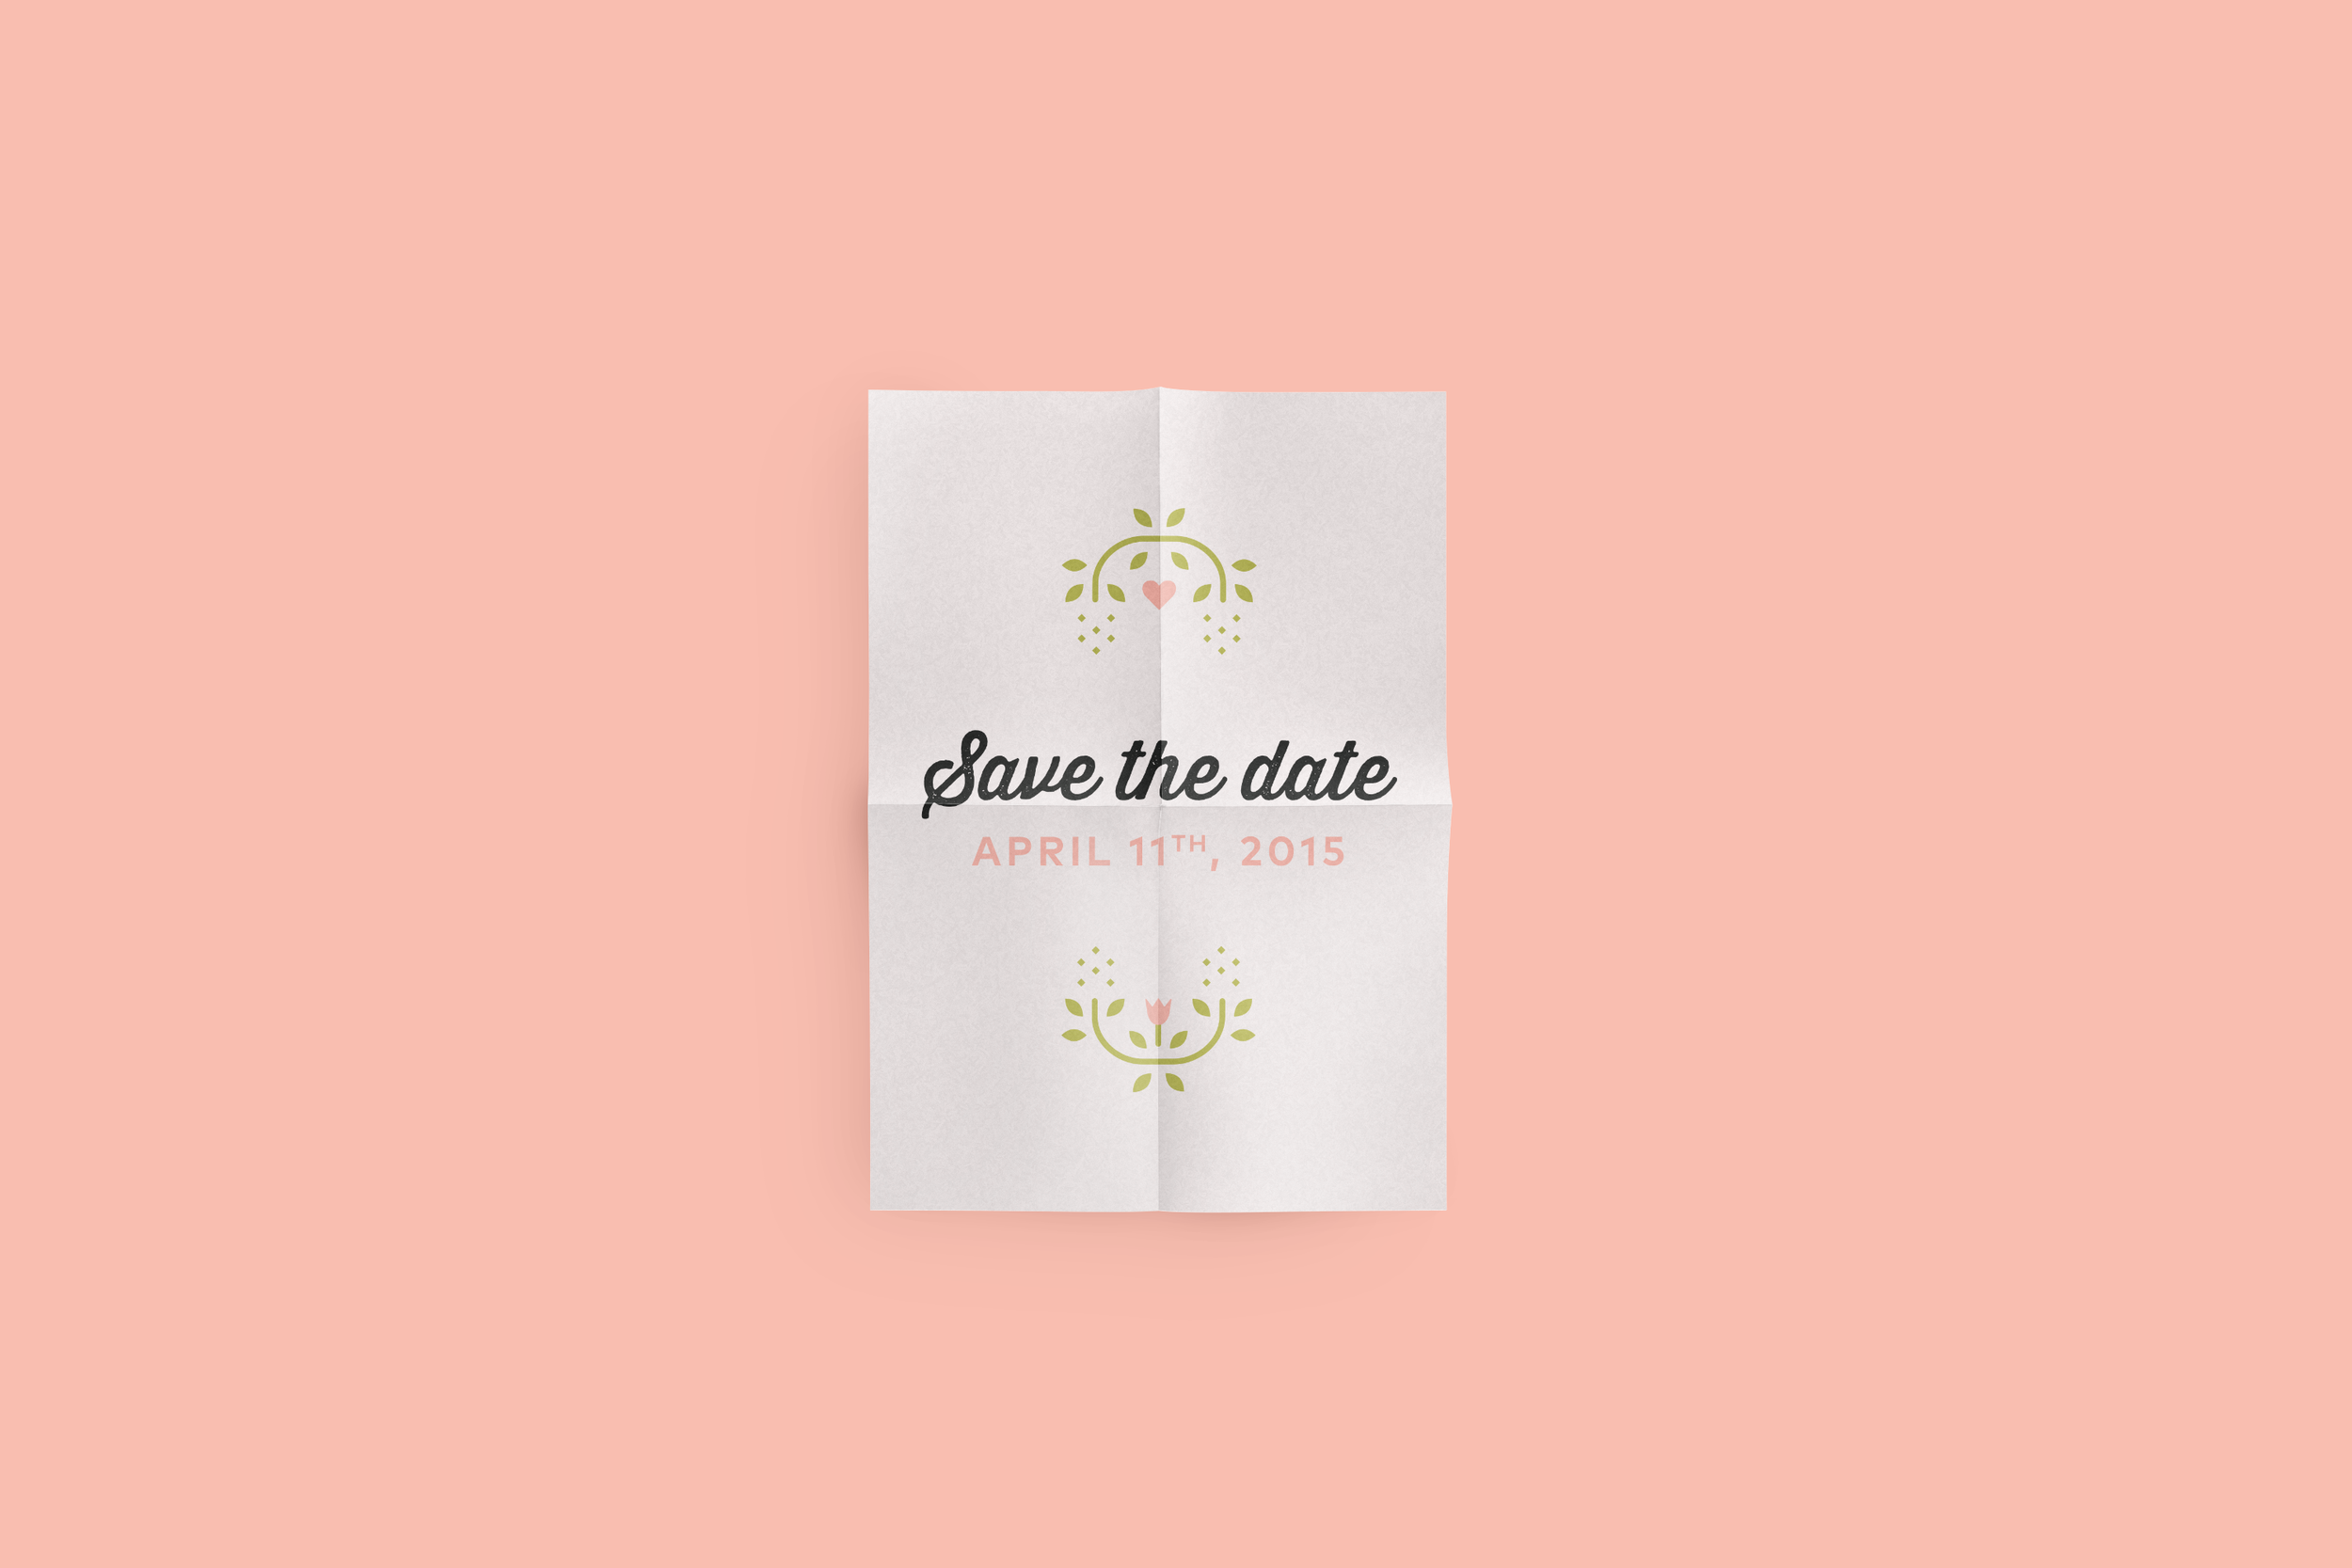 savethedate-front.png